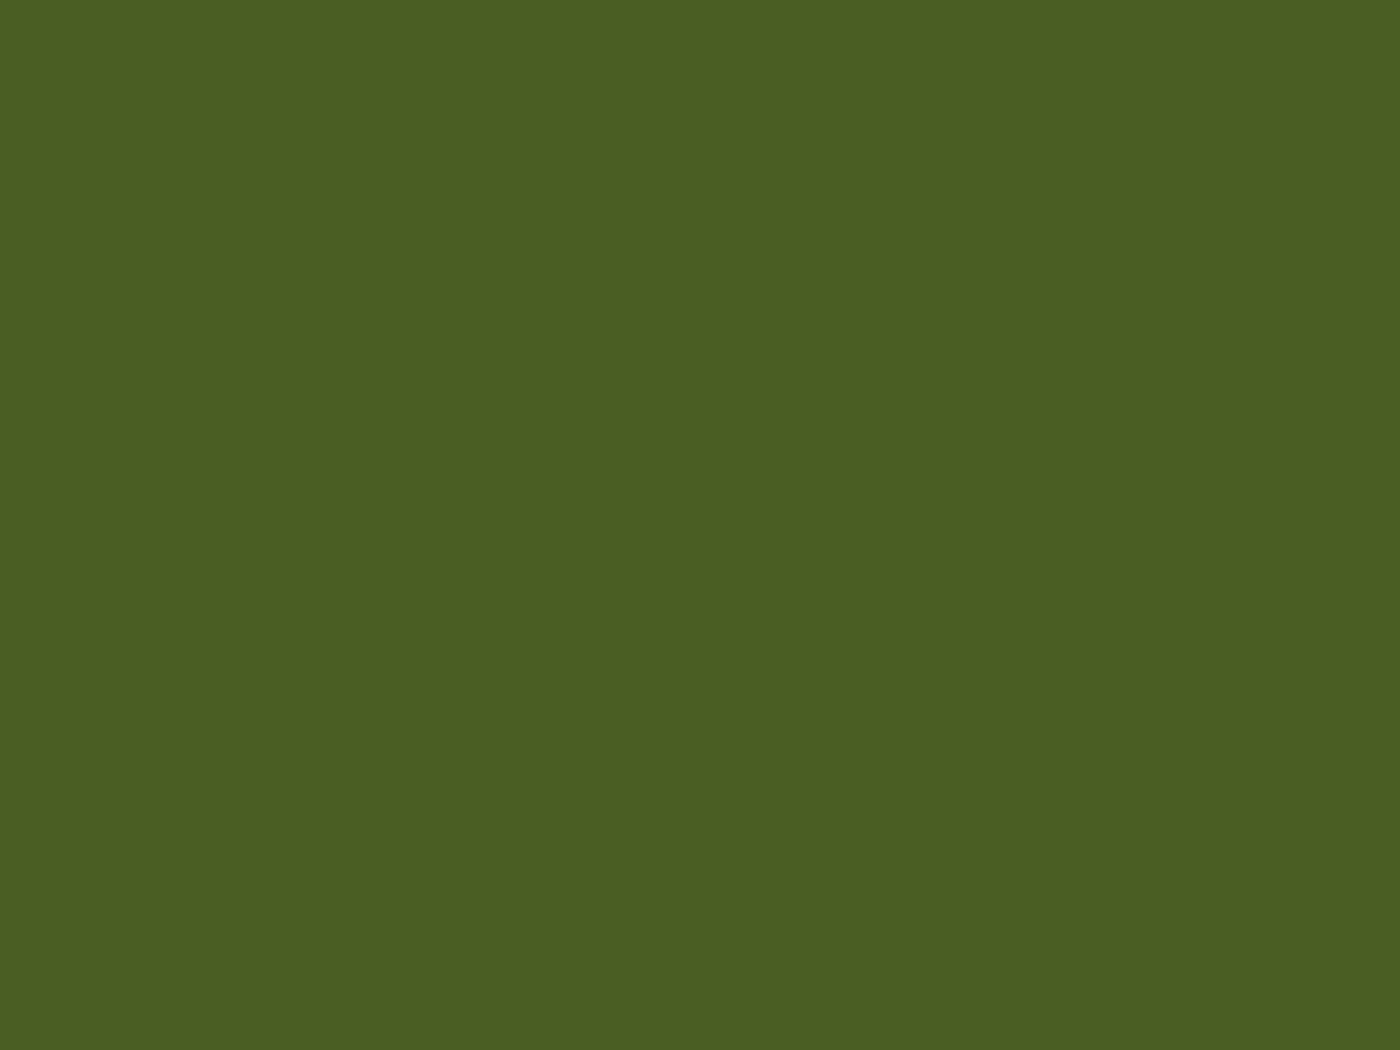 1400x1050 Dark Moss Green Solid Color Background